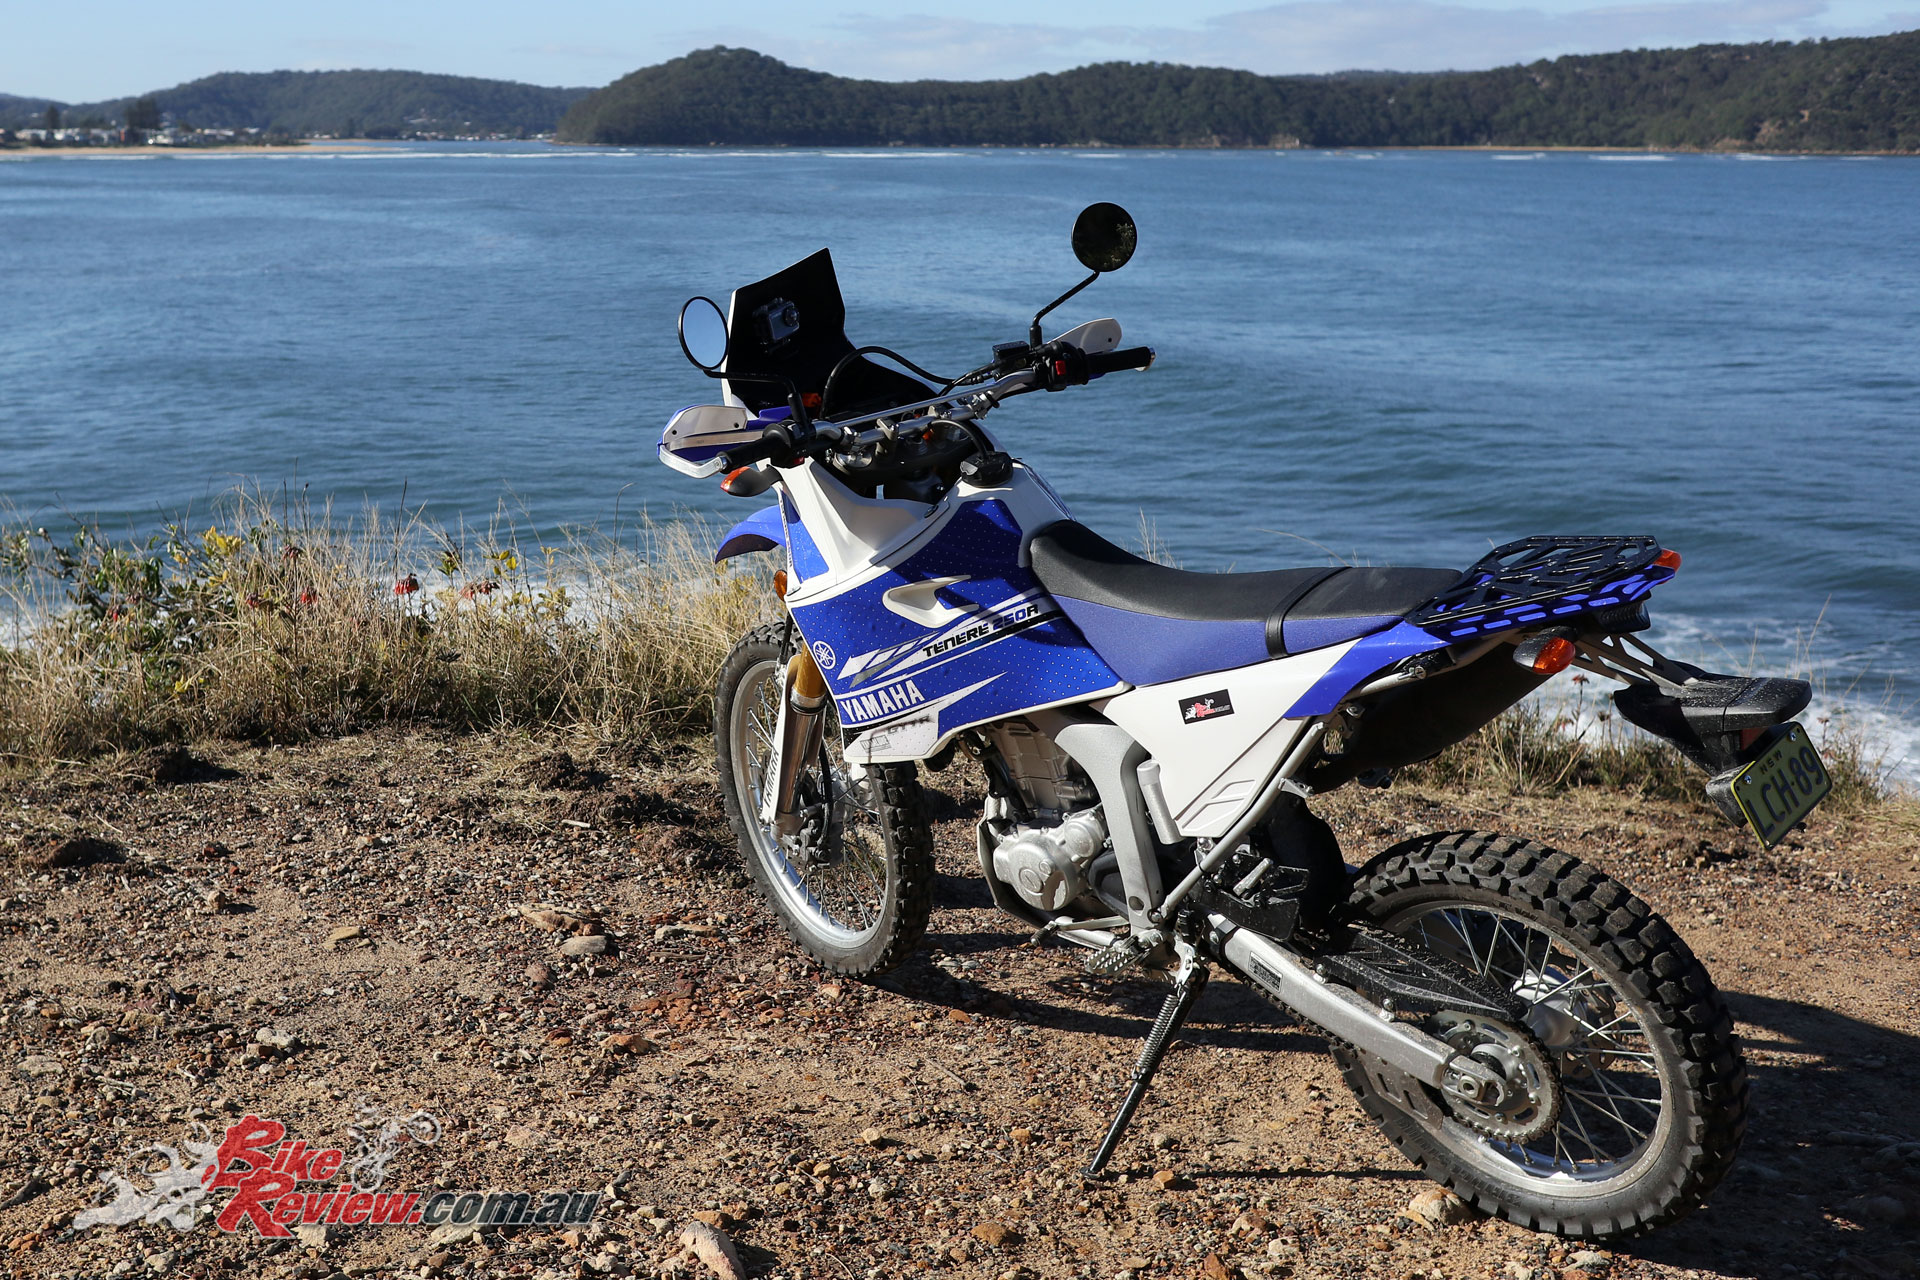 Project WR250R taking in the scenery